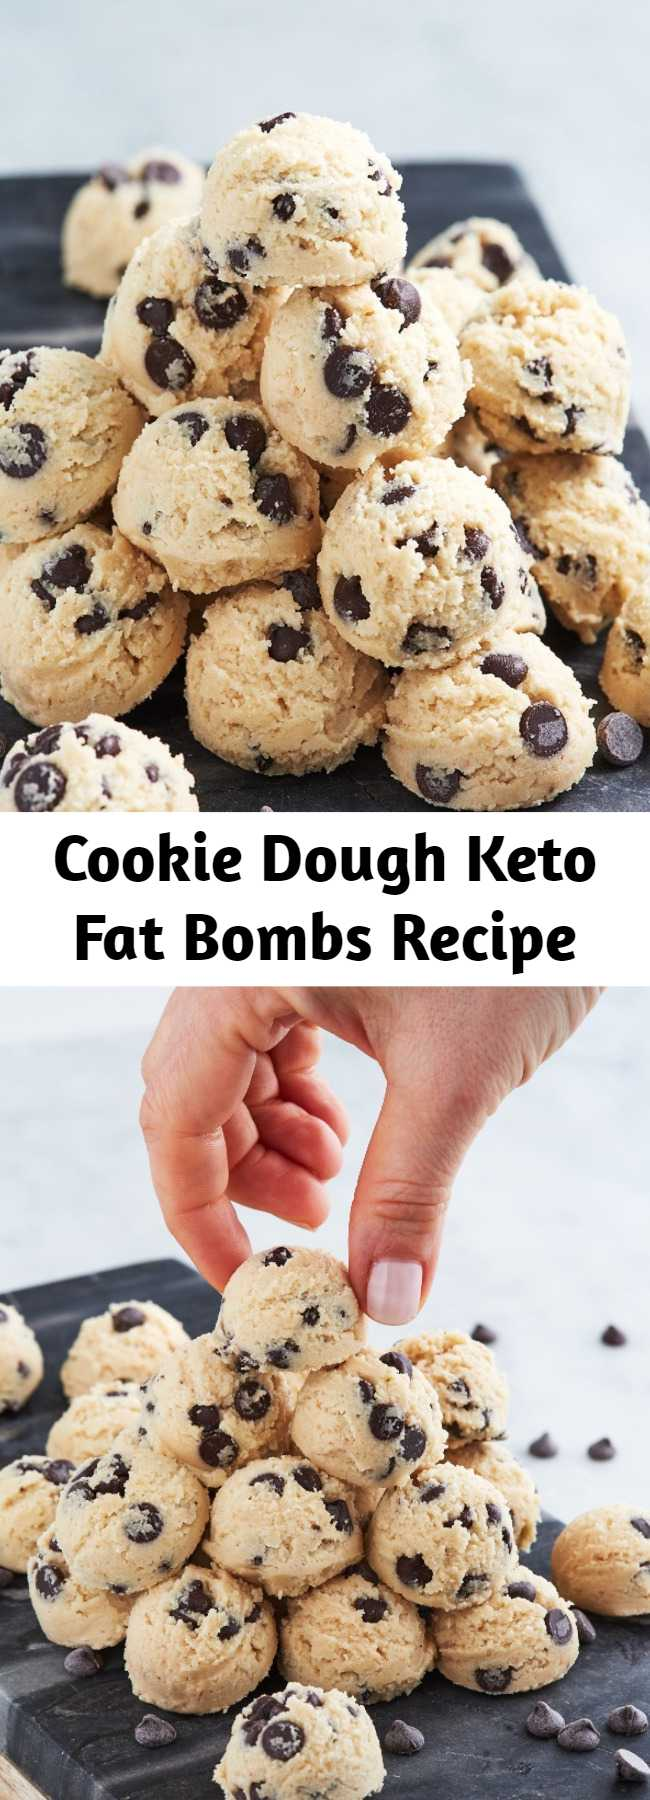 Cookie Dough Keto Fat Bombs Recipe - We brings you a recipe for a dessert bite that won't through you off your keto cycle. These are the keto-friendly way to eat cookie dough right out of the package. #ketorecipes #fatbombs #cookiedough #cookiedoughfatbombs #ketosnack #ketodessert #healthyrecipes #healthysnacks